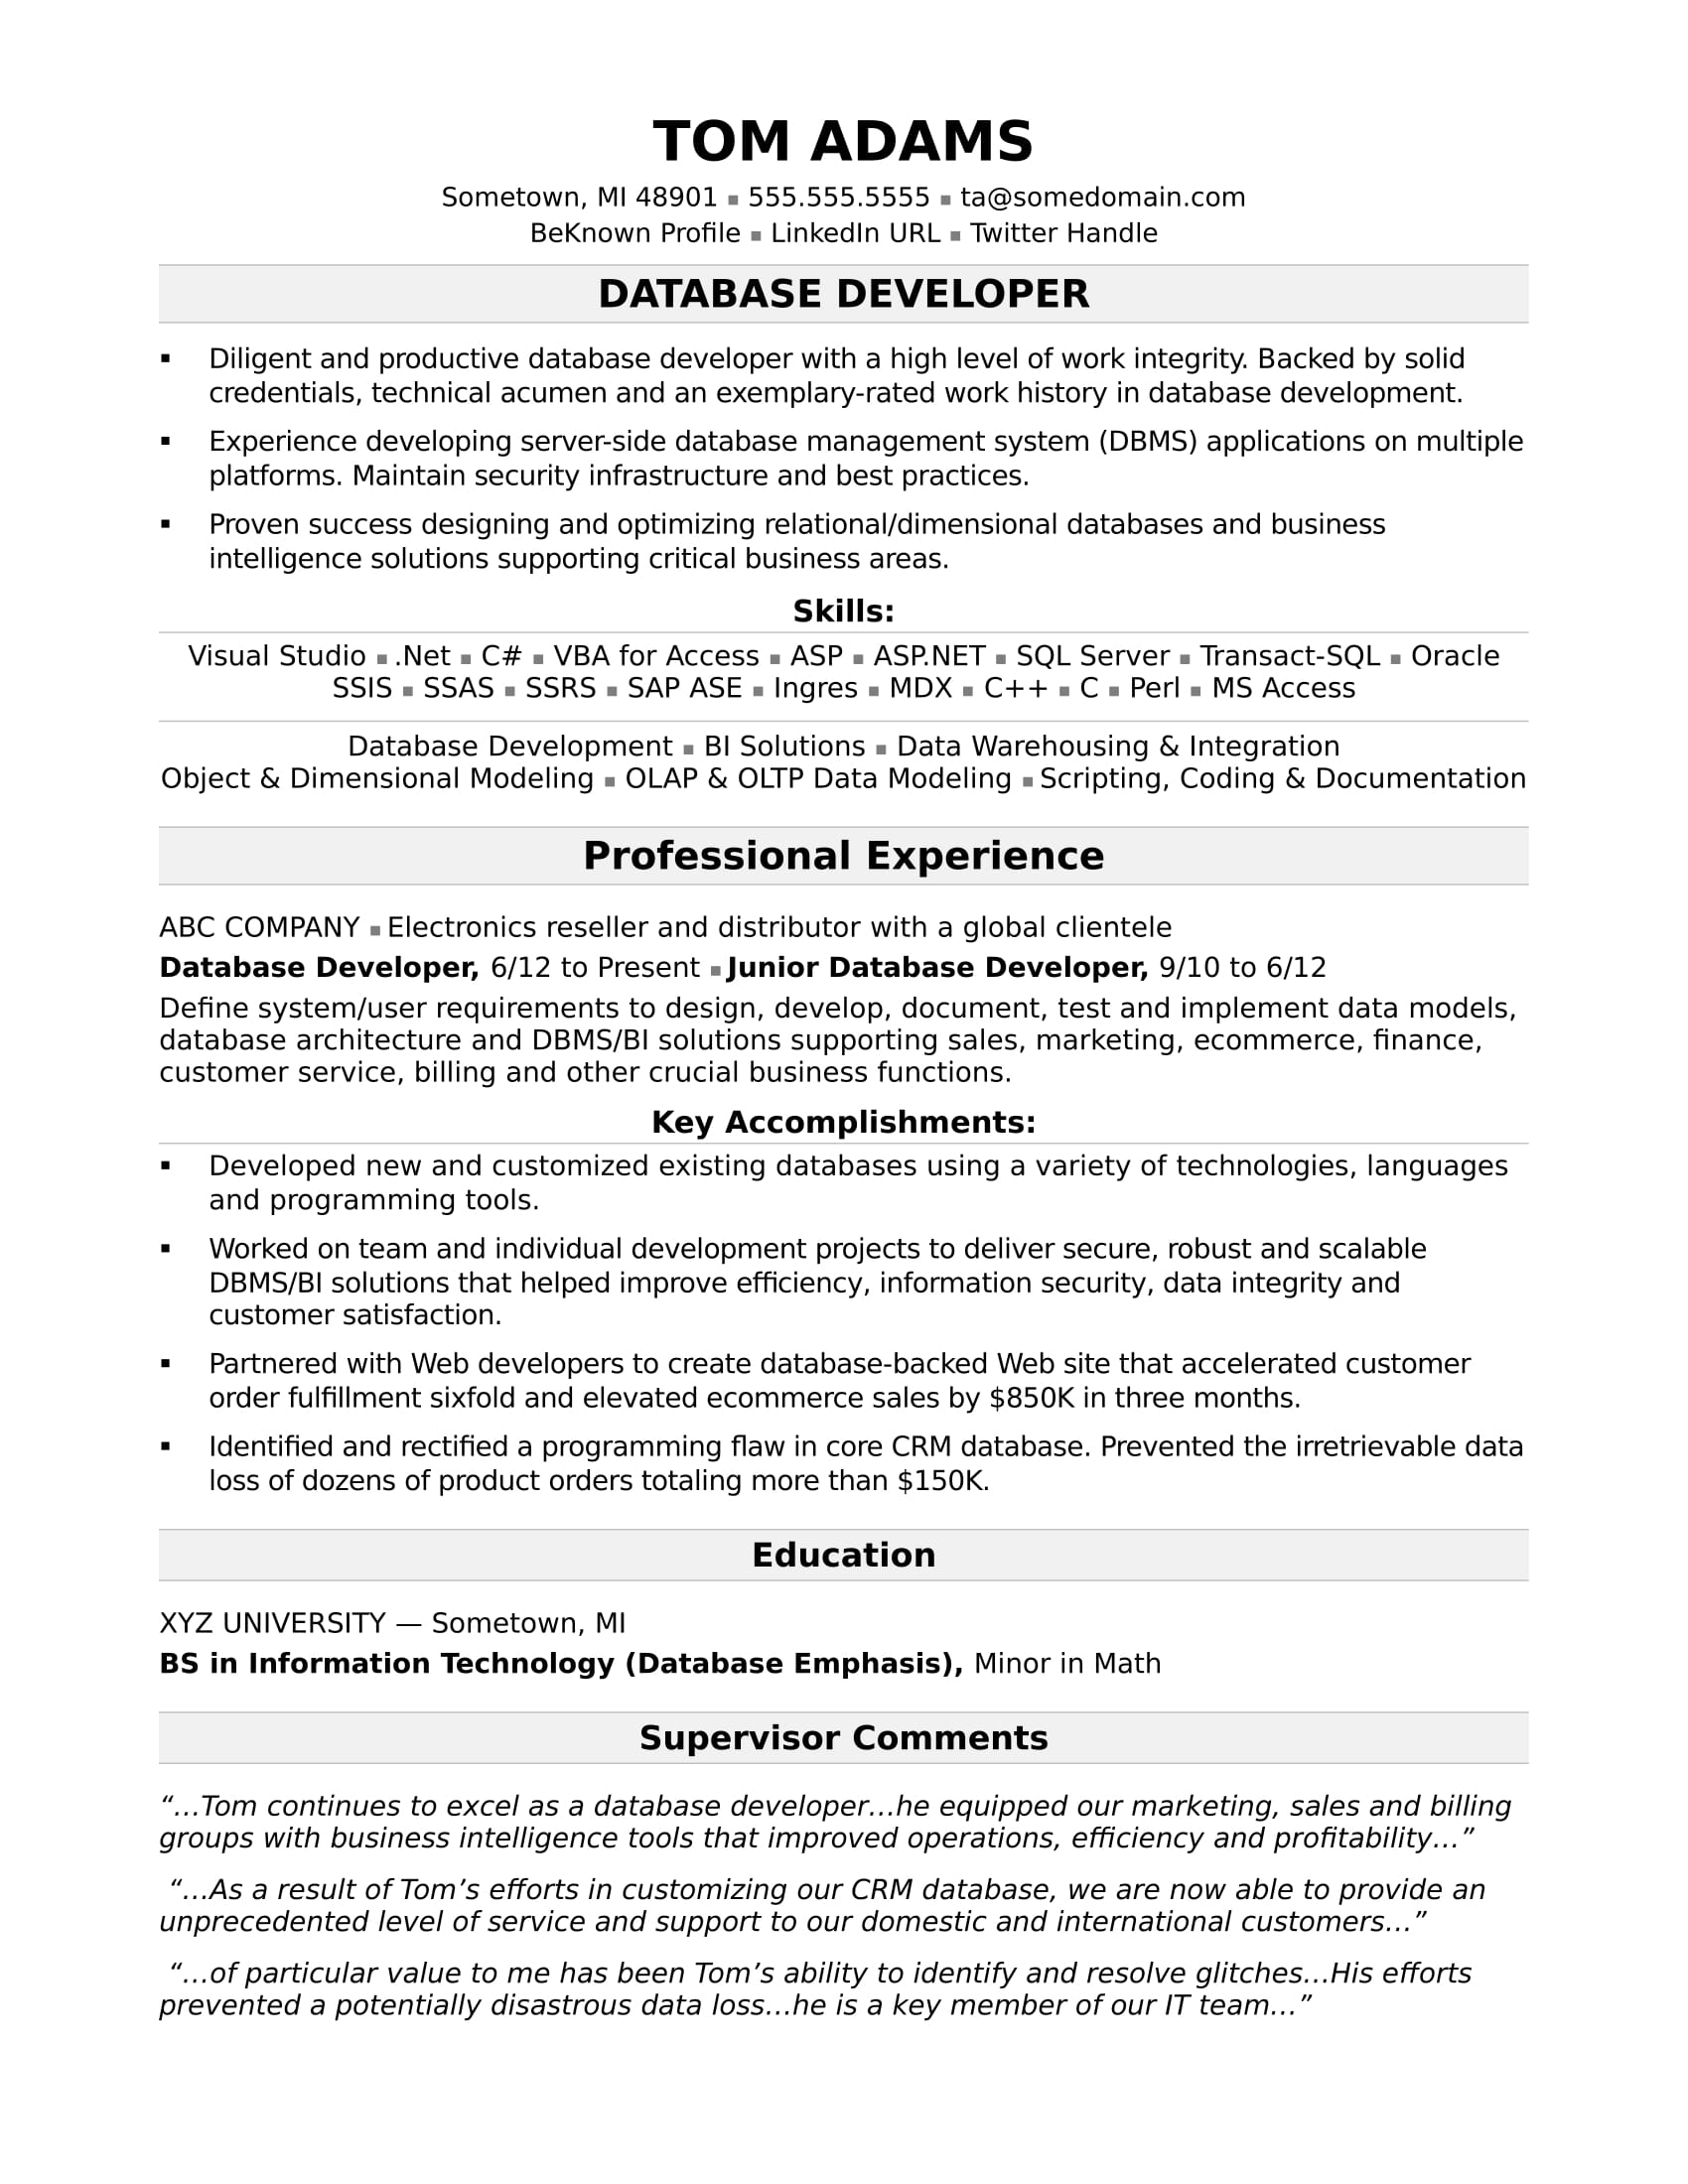 Superb Sample Resume For A Midlevel IT Developer Intended Database Developer Resume